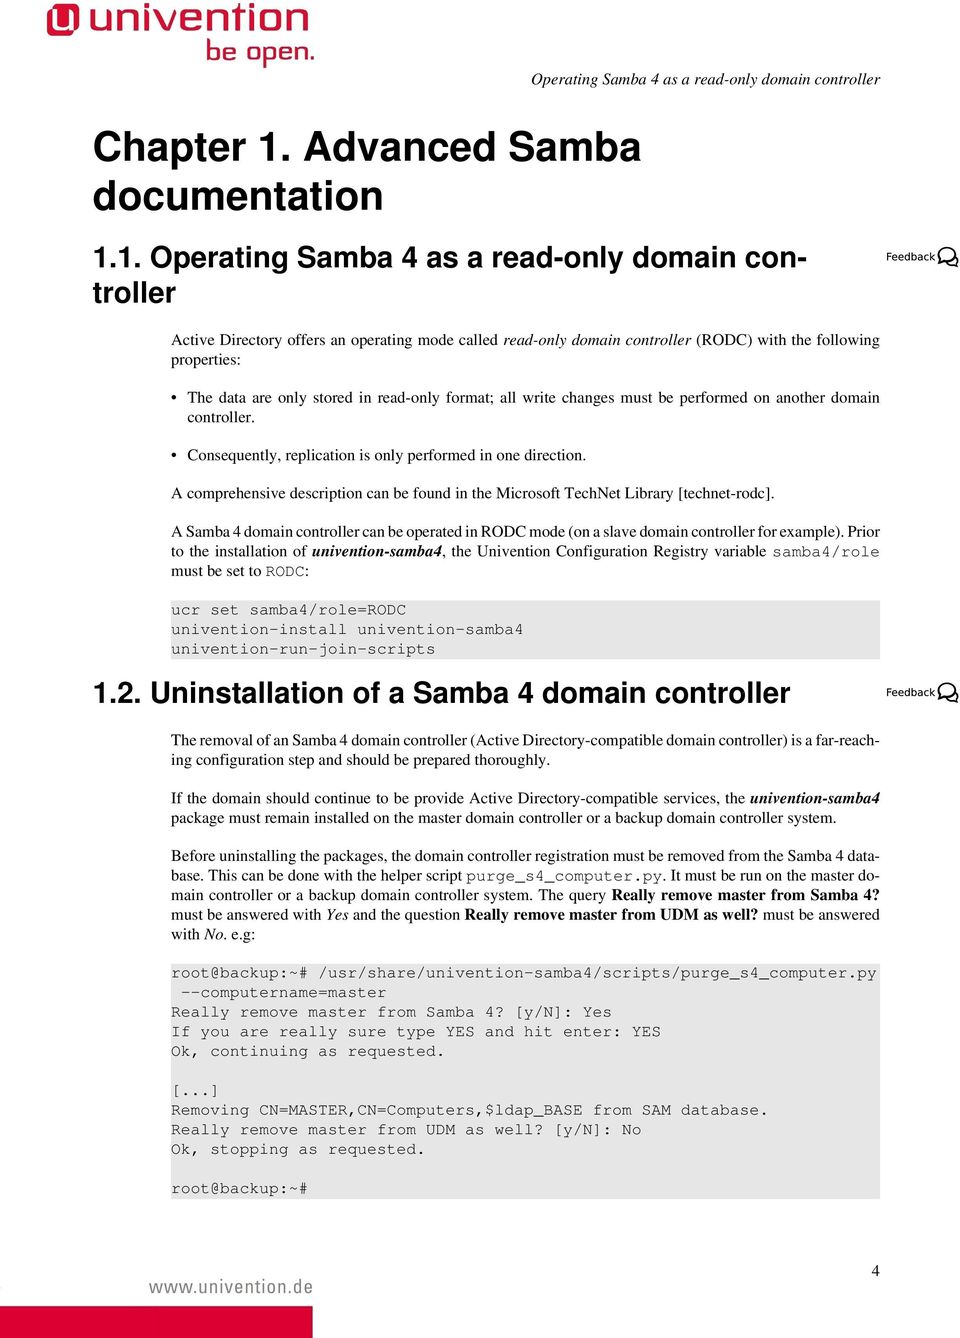 1. Operating Samba 4 as a read-only domain controller Active Directory offers an operating mode called read-only domain controller (RODC) with the following properties: The data are only stored in